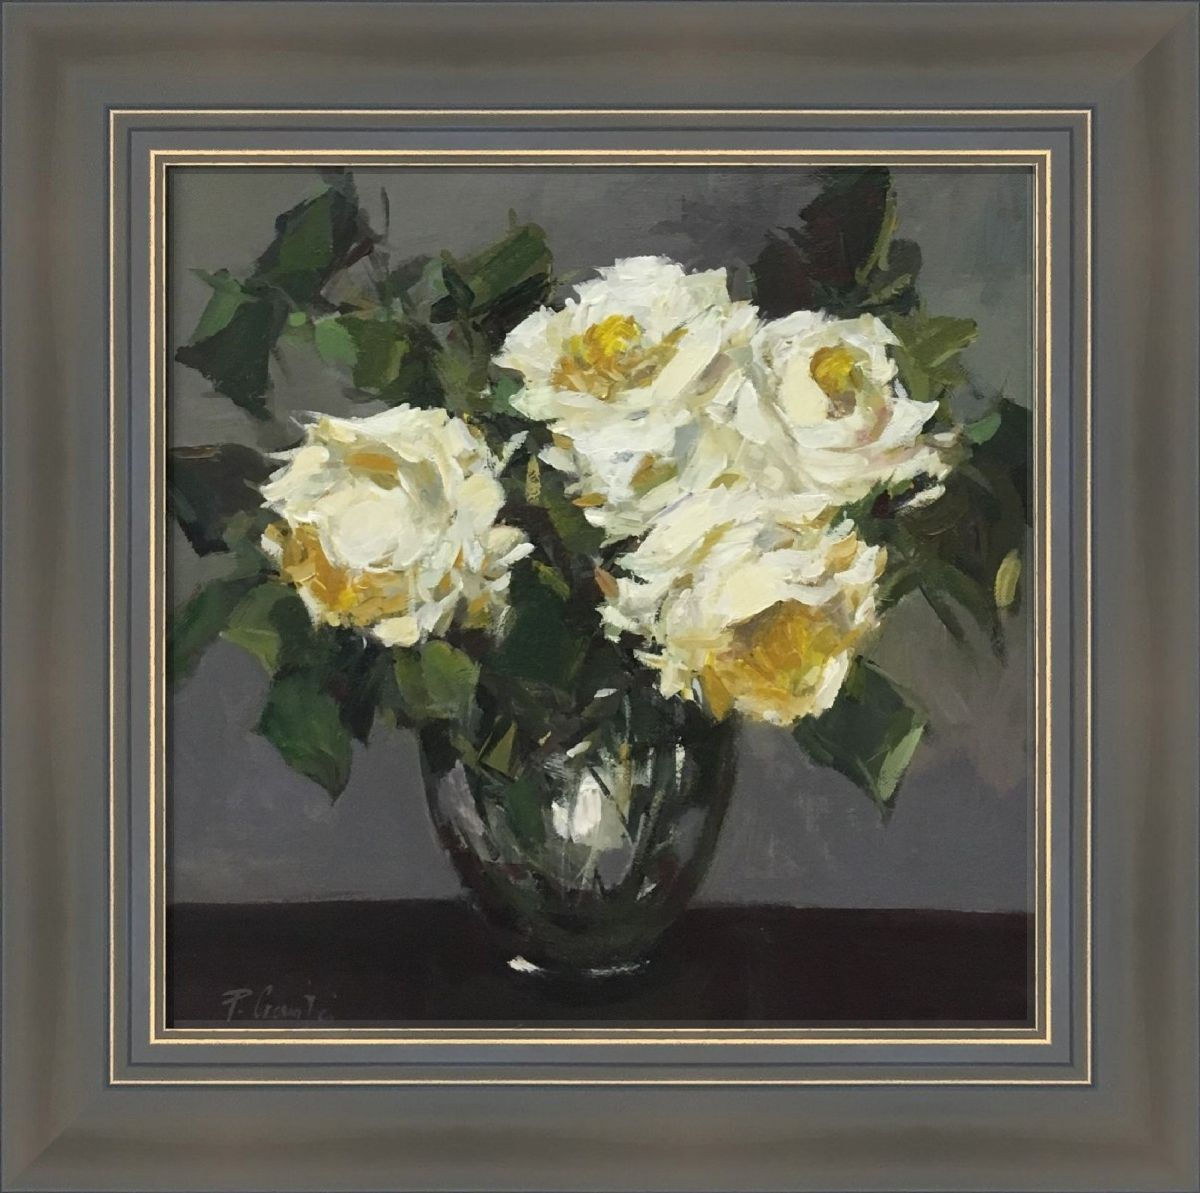 White Roses in a Glass by Parastoo Ganjei